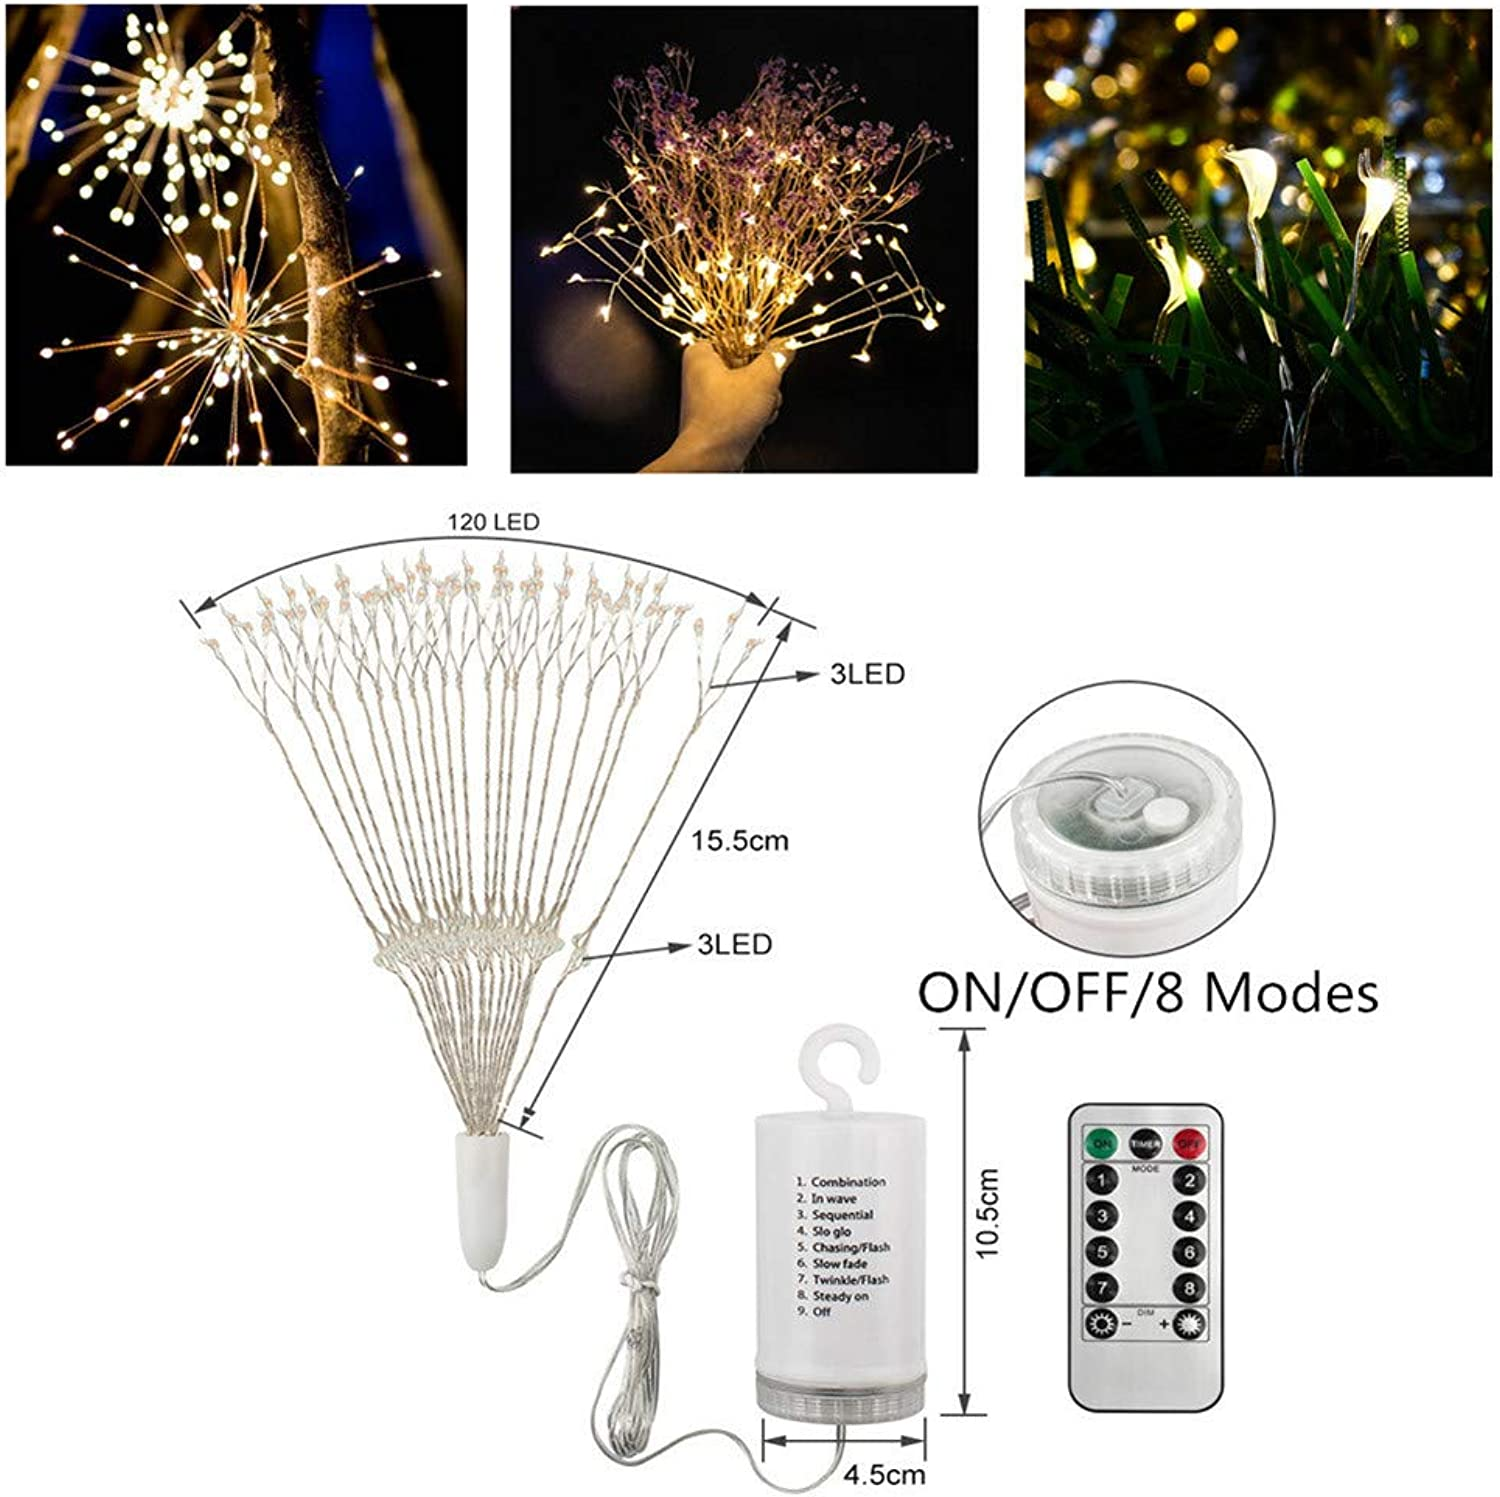 String Light for Bedroom,INorton Battery Powered Christmas Outdoor LED Fireworks Lamps,IP65 Waterproof Remote Control Garden Decoration Spotlight